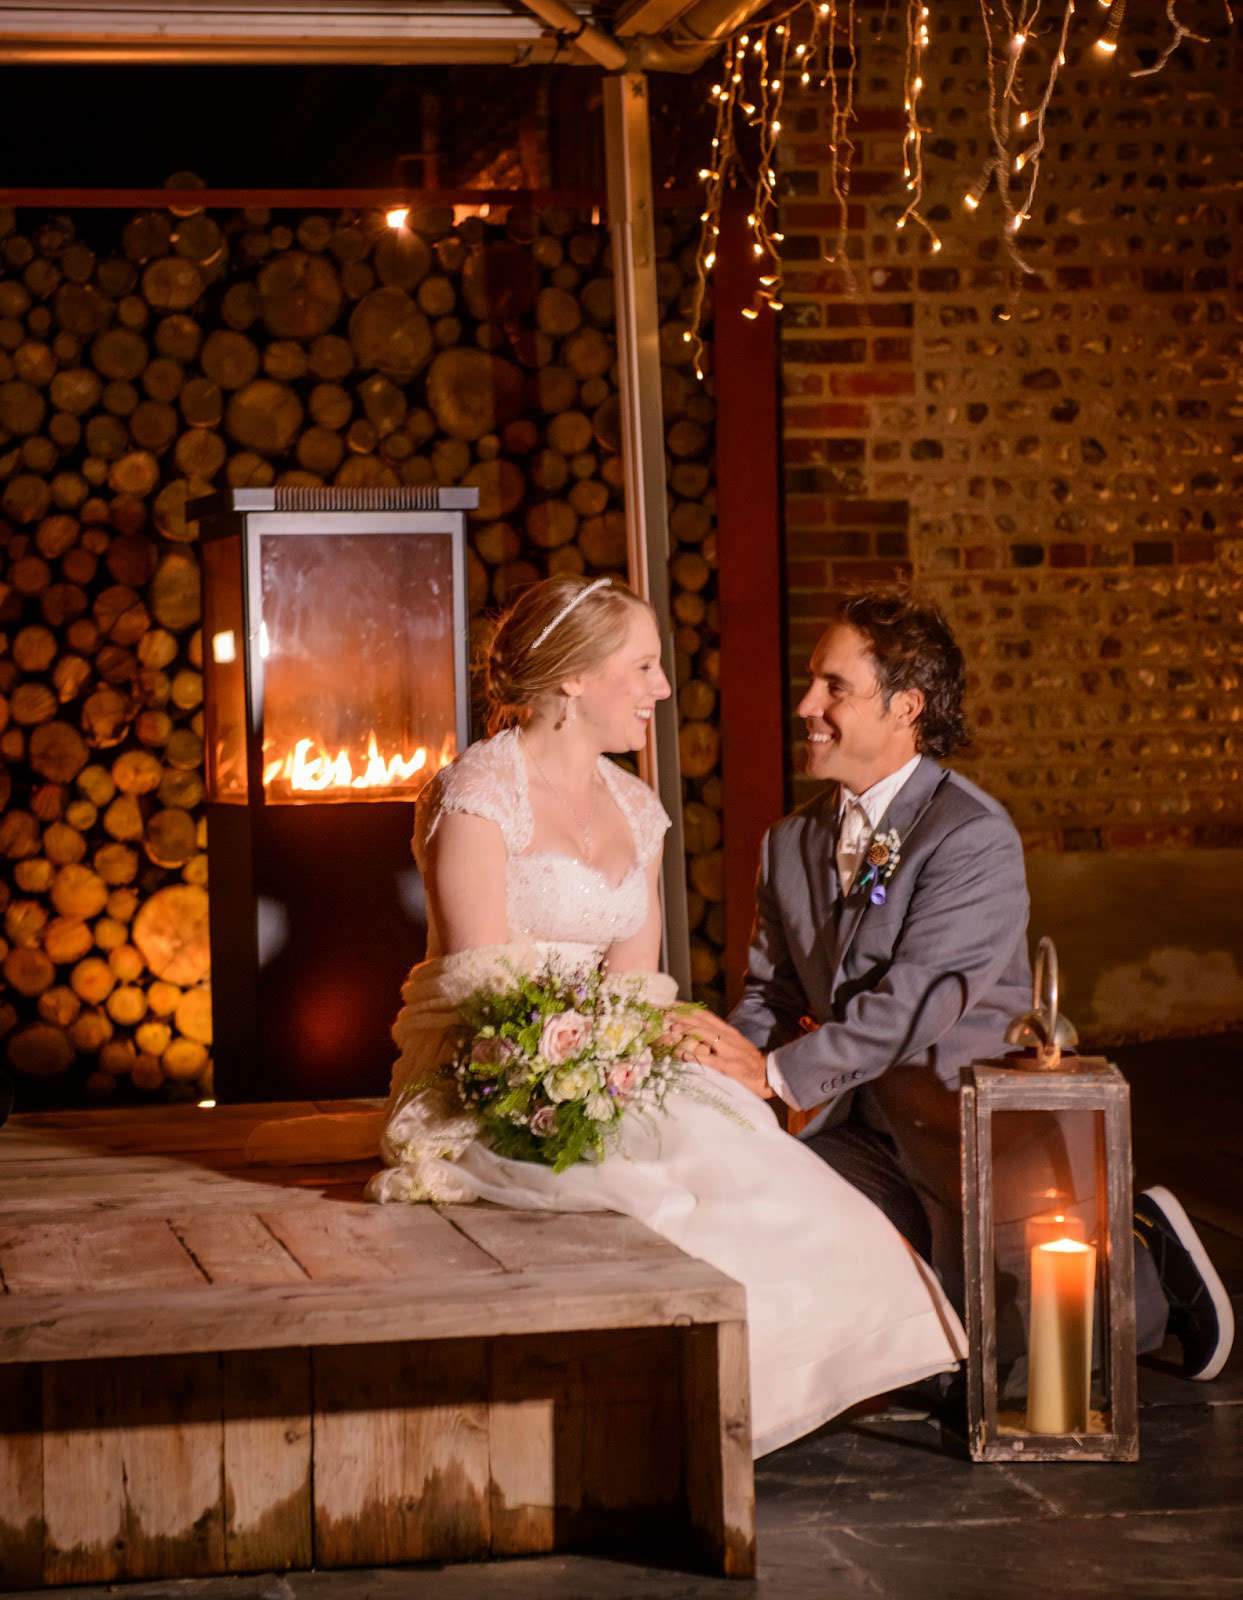 ali-gaudion-chichester-wedding-photographer-southend-barns-winter-wedding-009